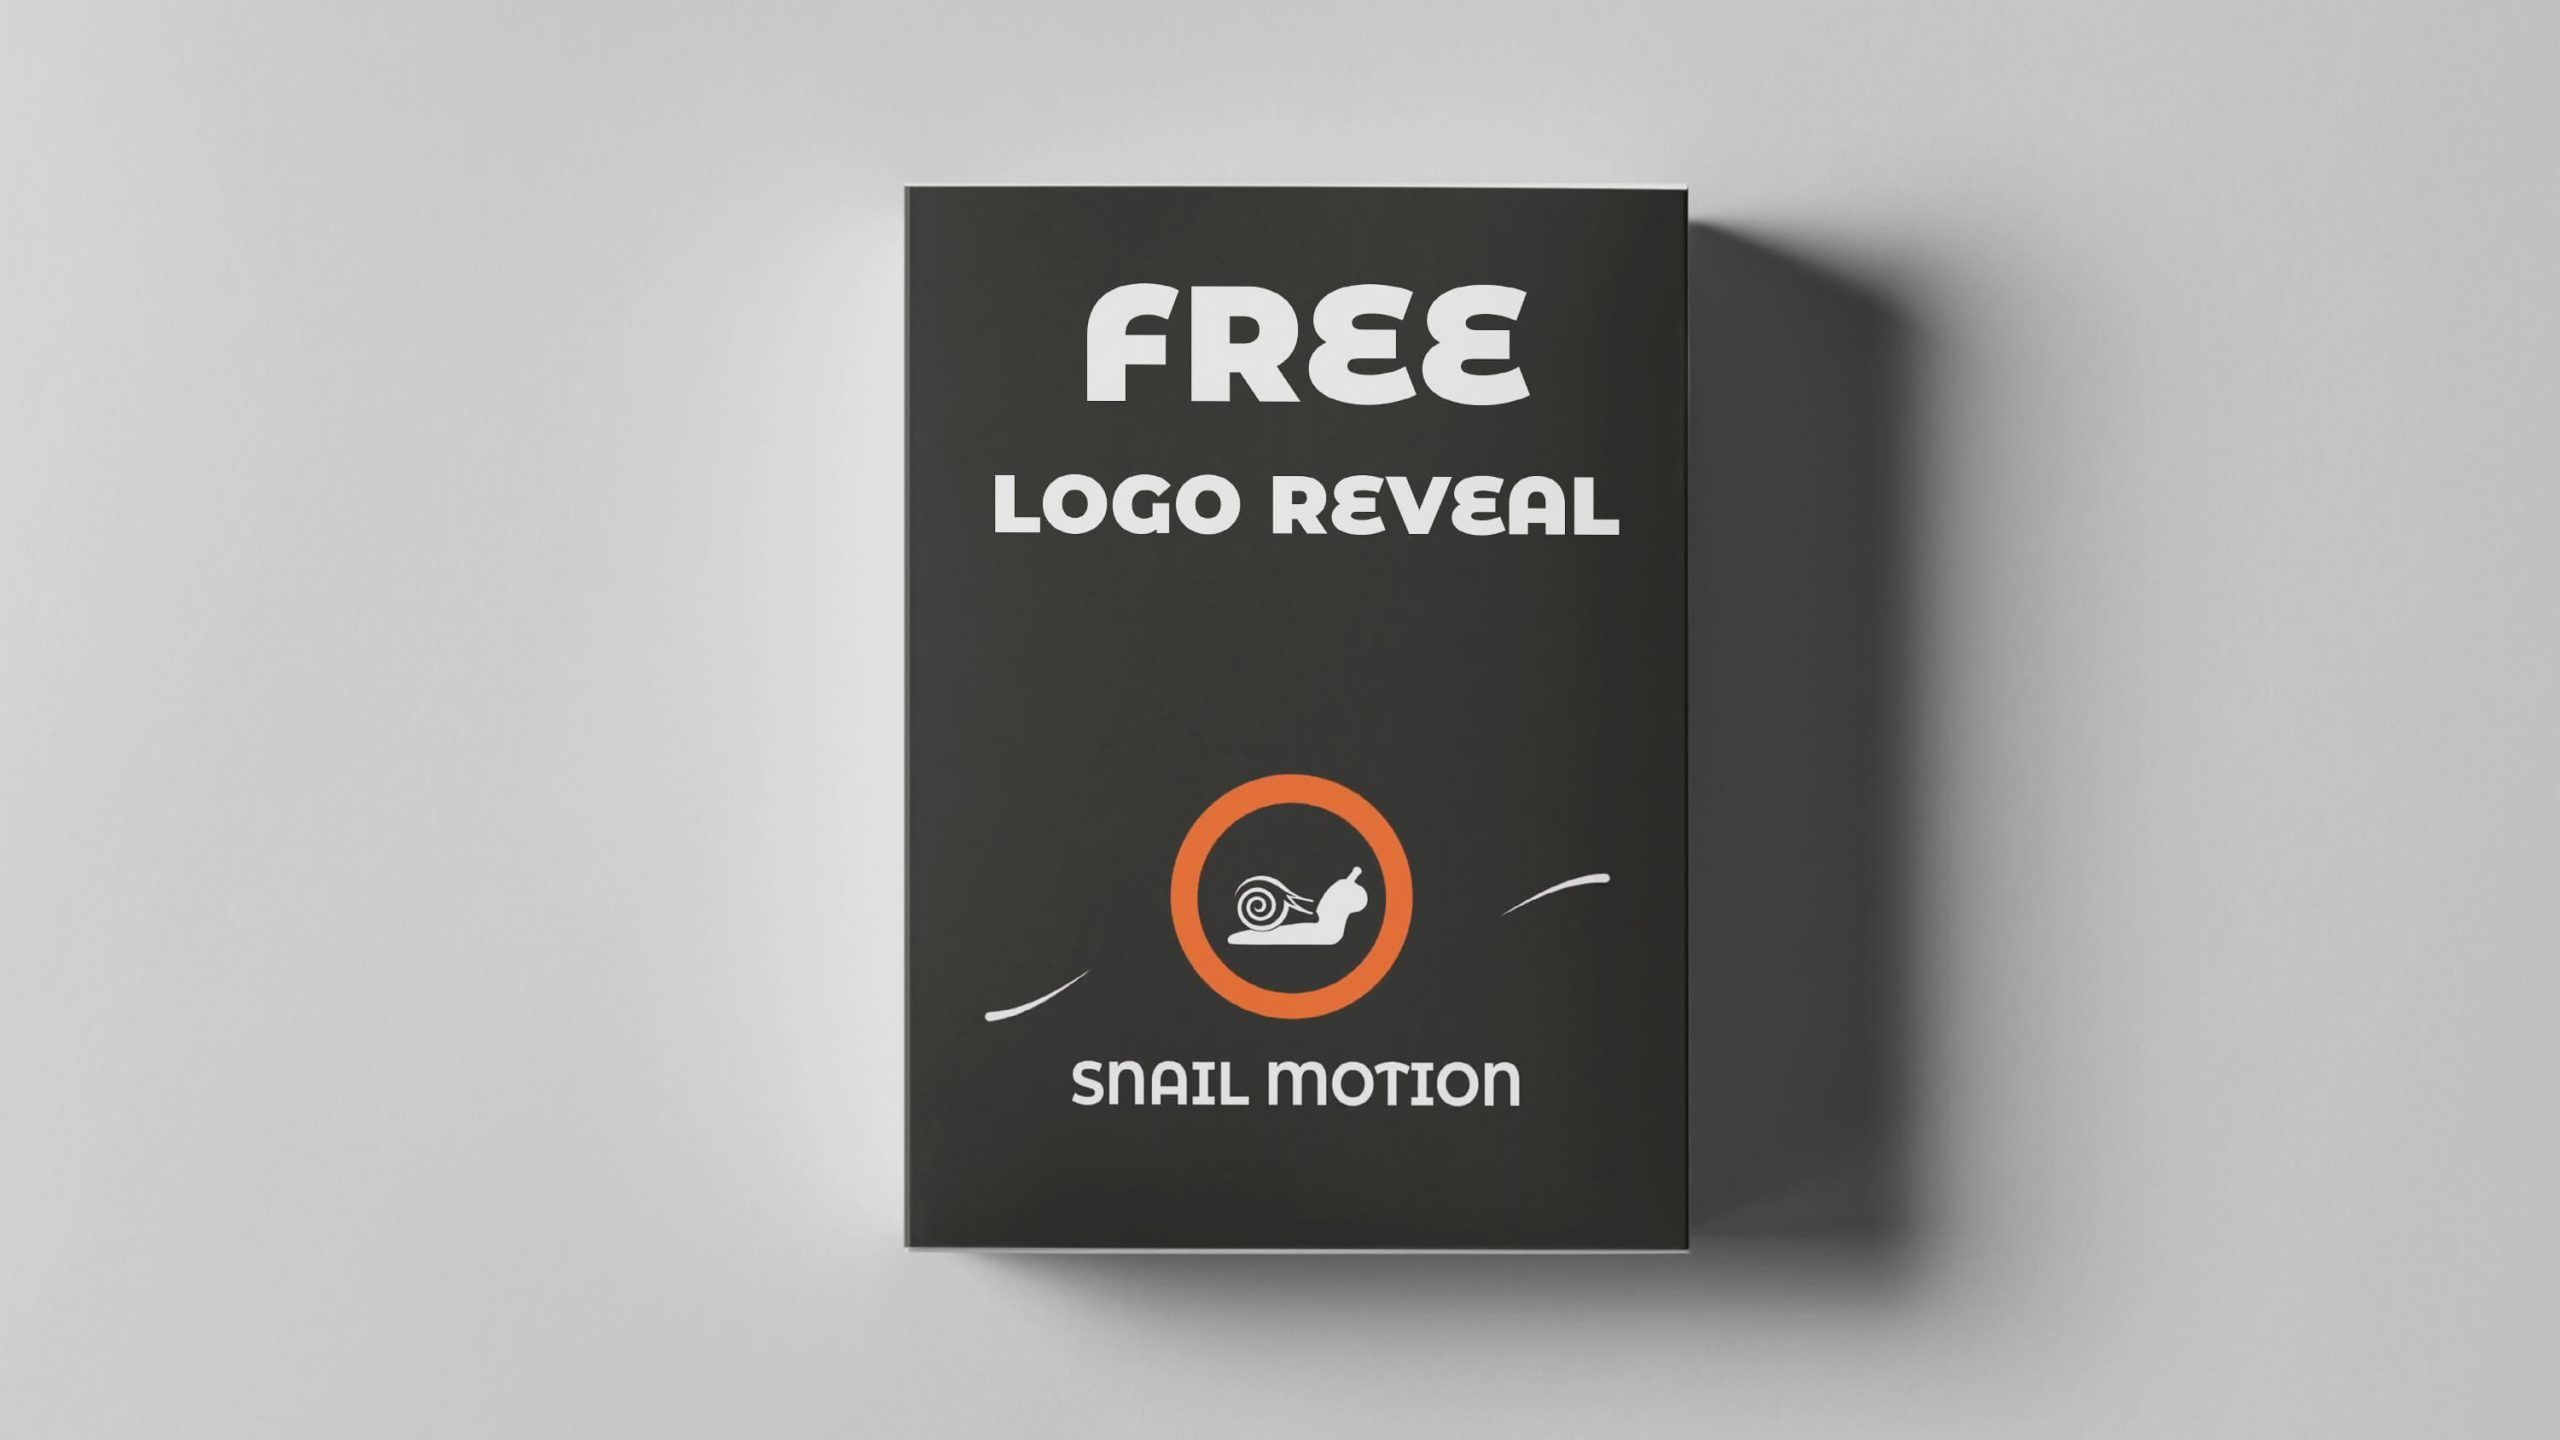 Free Logo Reveal for After Effect Snail Motion in 2020